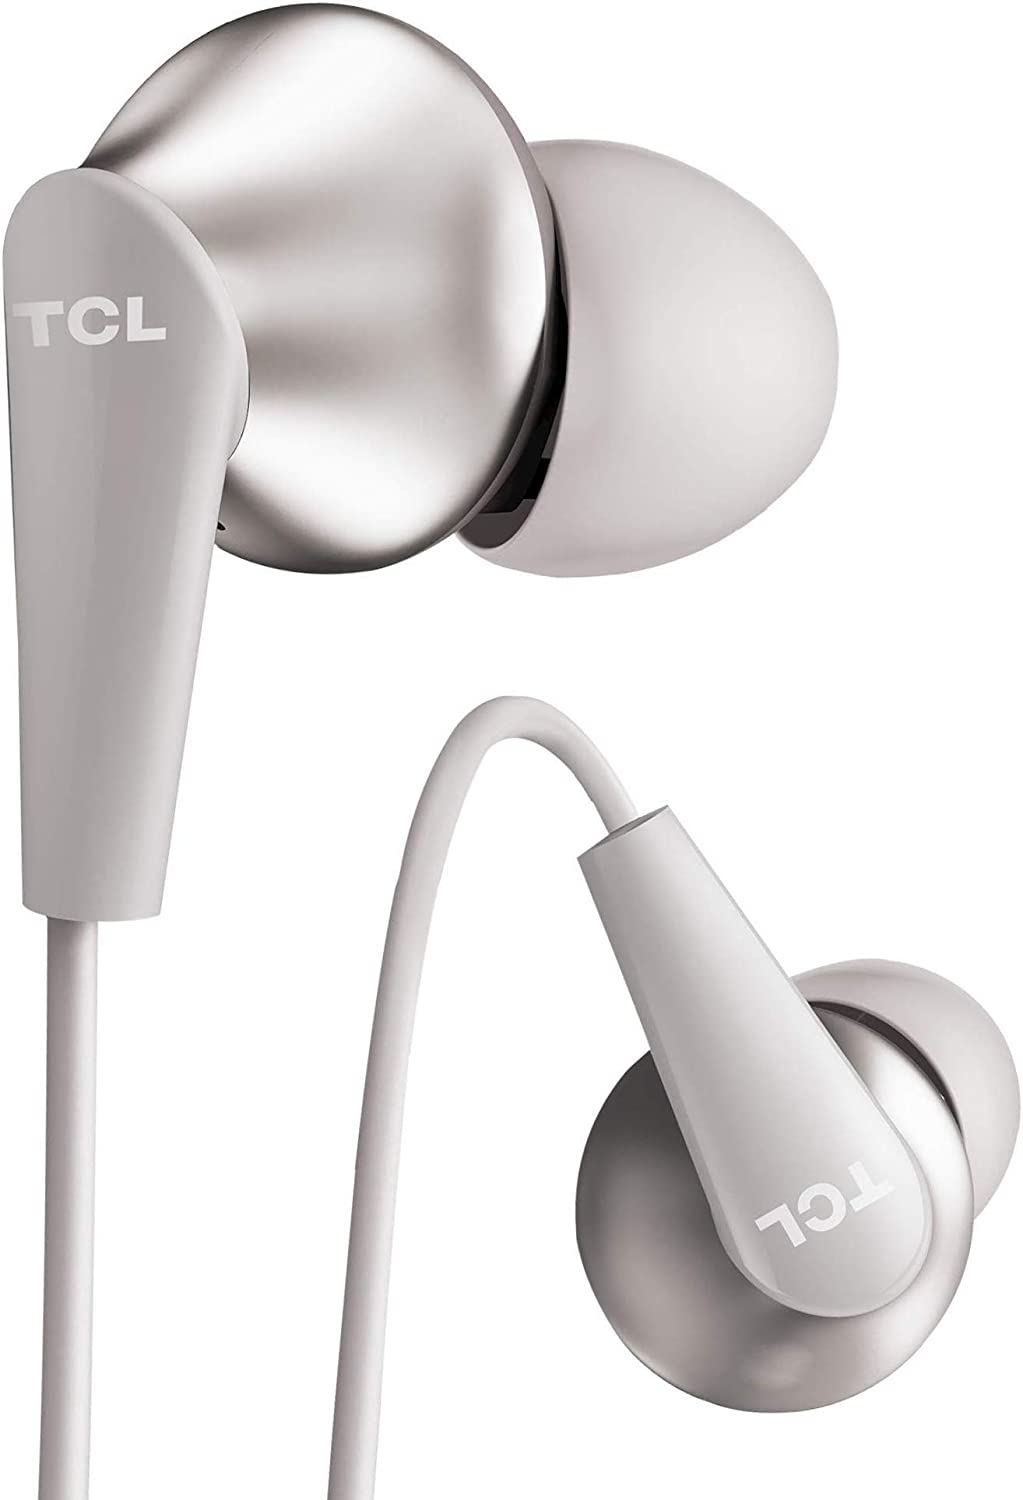 TCL Elit300 in-Ear Earbuds Hi-Res Wired Dual Driver Headphones with Piezo Drivers and Built-in Mic – Cement Gray